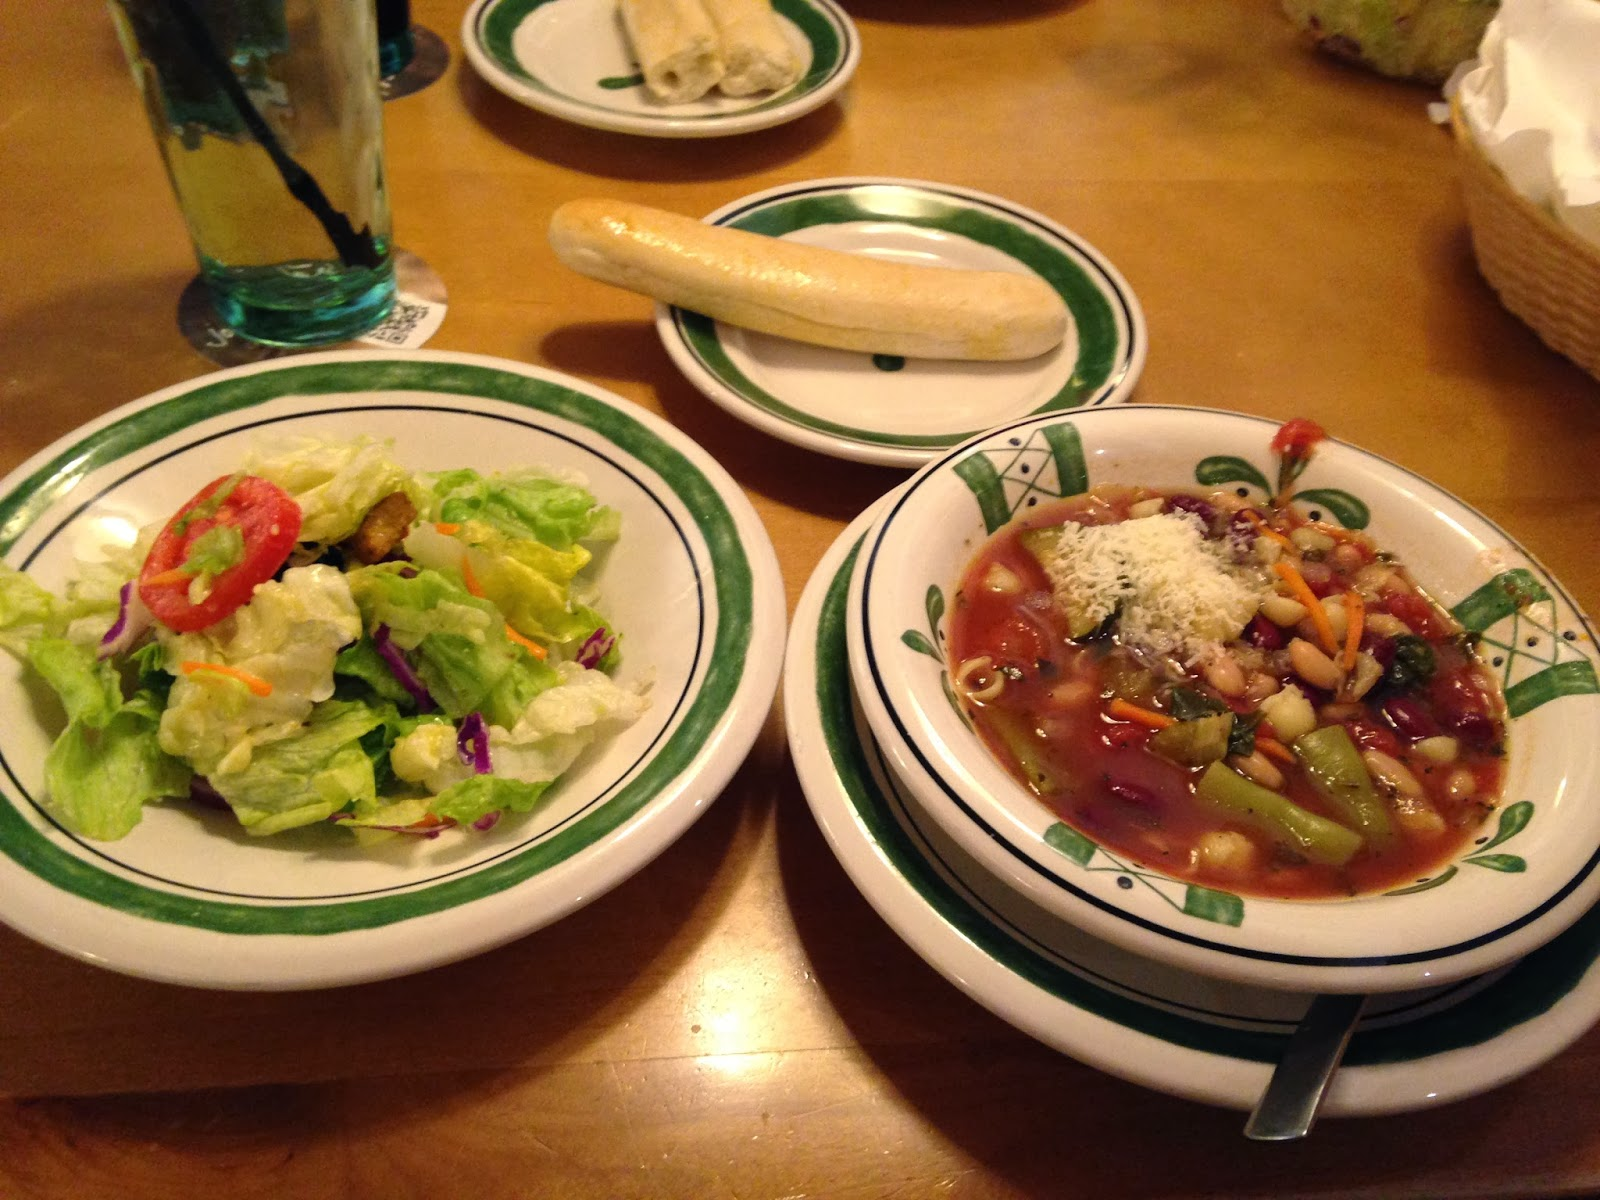 lunch was a quick one at olive garden the unlimited soup salad and breadsticks was too much to pass up on a frigid day - Olive Garden Soup Salad And Breadsticks